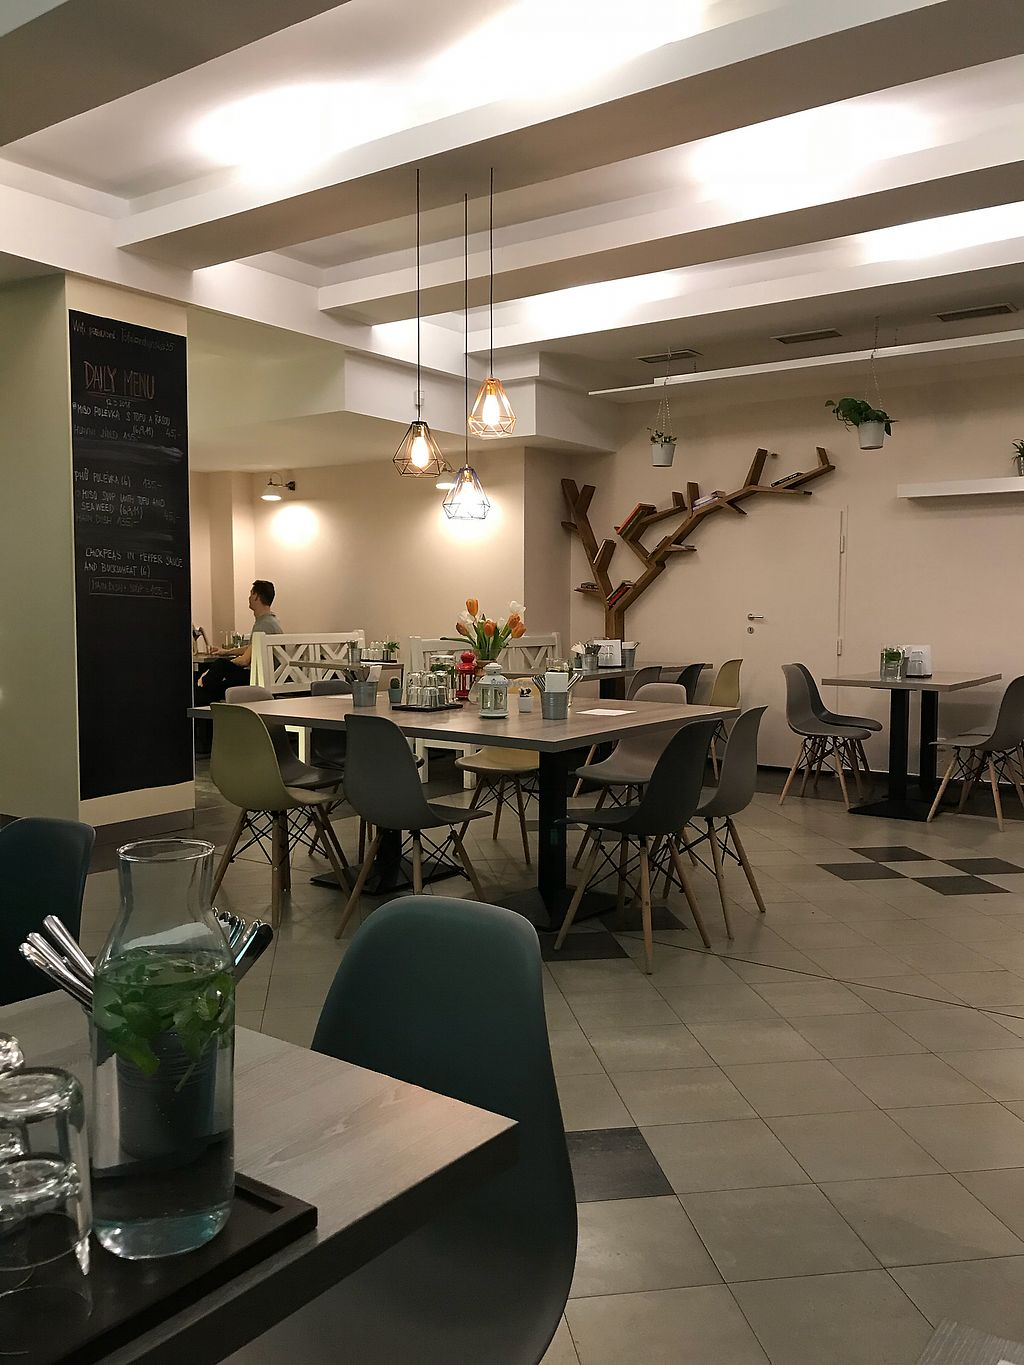 """Photo of Forrest Bistro  by <a href=""""/members/profile/AlexDowney"""">AlexDowney</a> <br/>Restaurant interior <br/> March 12, 2018  - <a href='/contact/abuse/image/102335/369935'>Report</a>"""